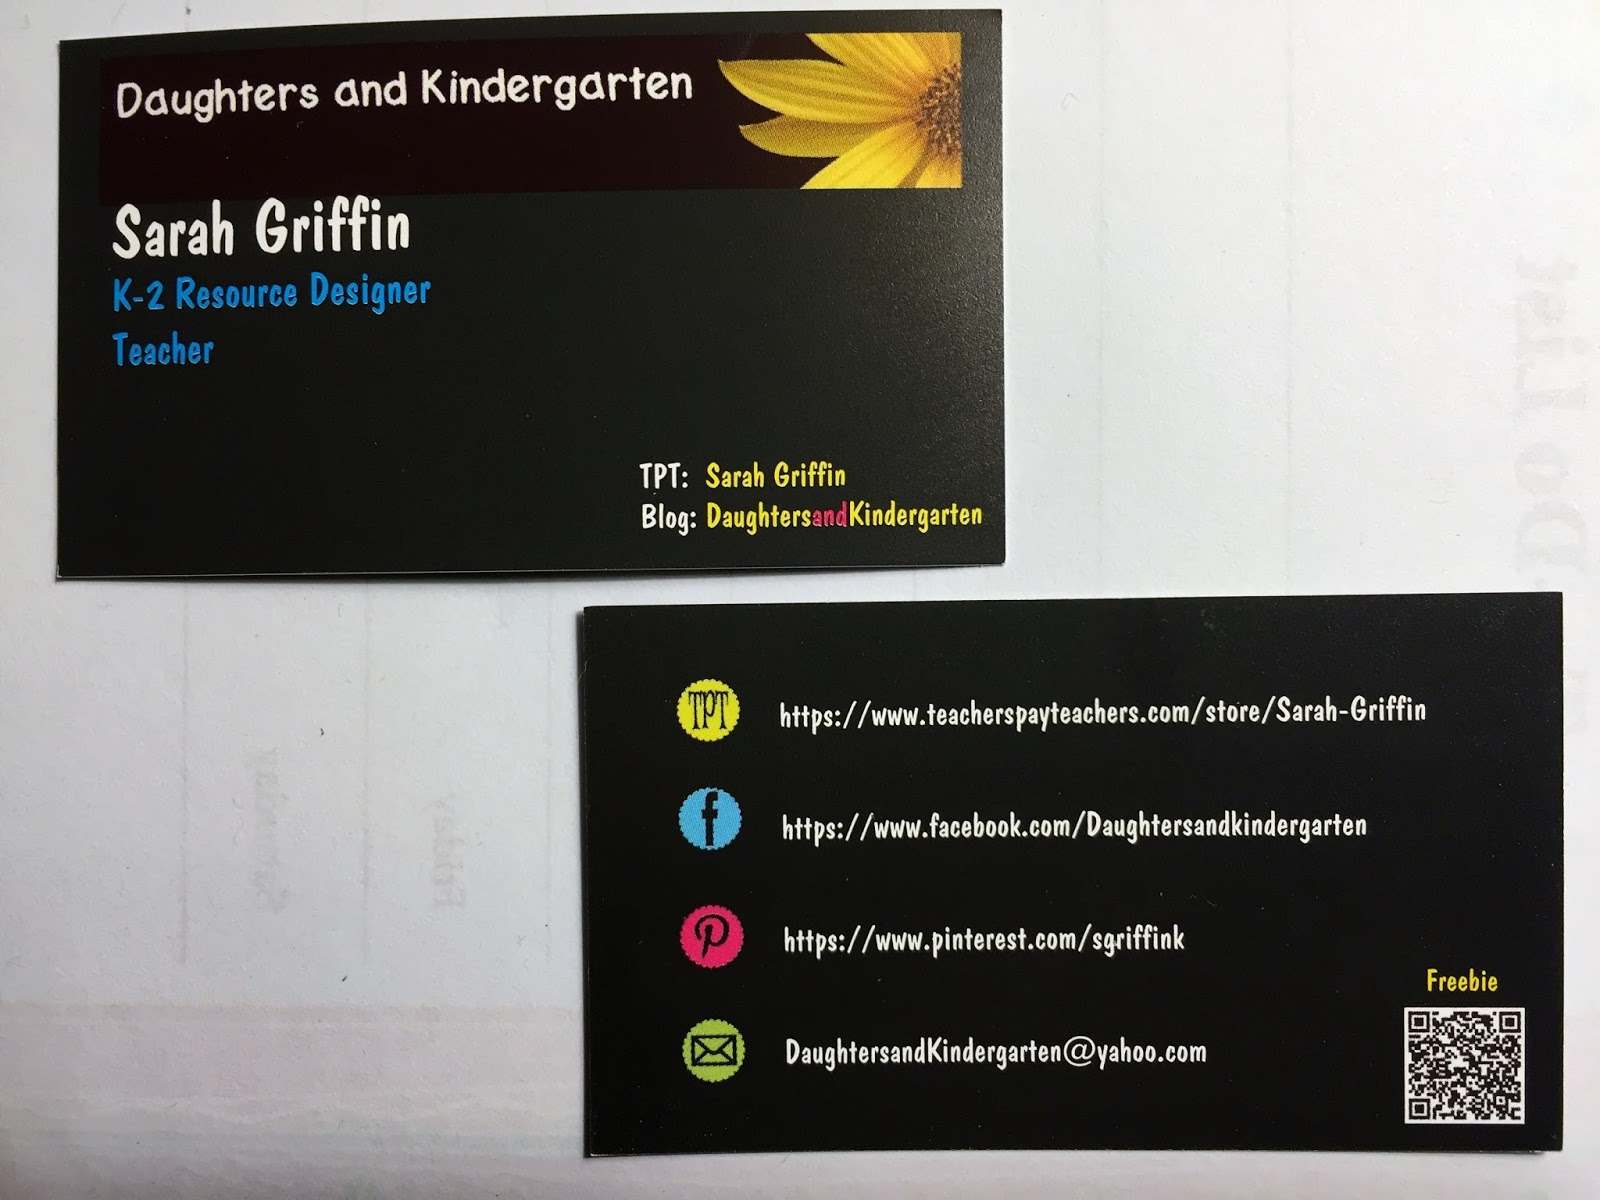 Daughters and Kindergarten: Business Cards for TPT